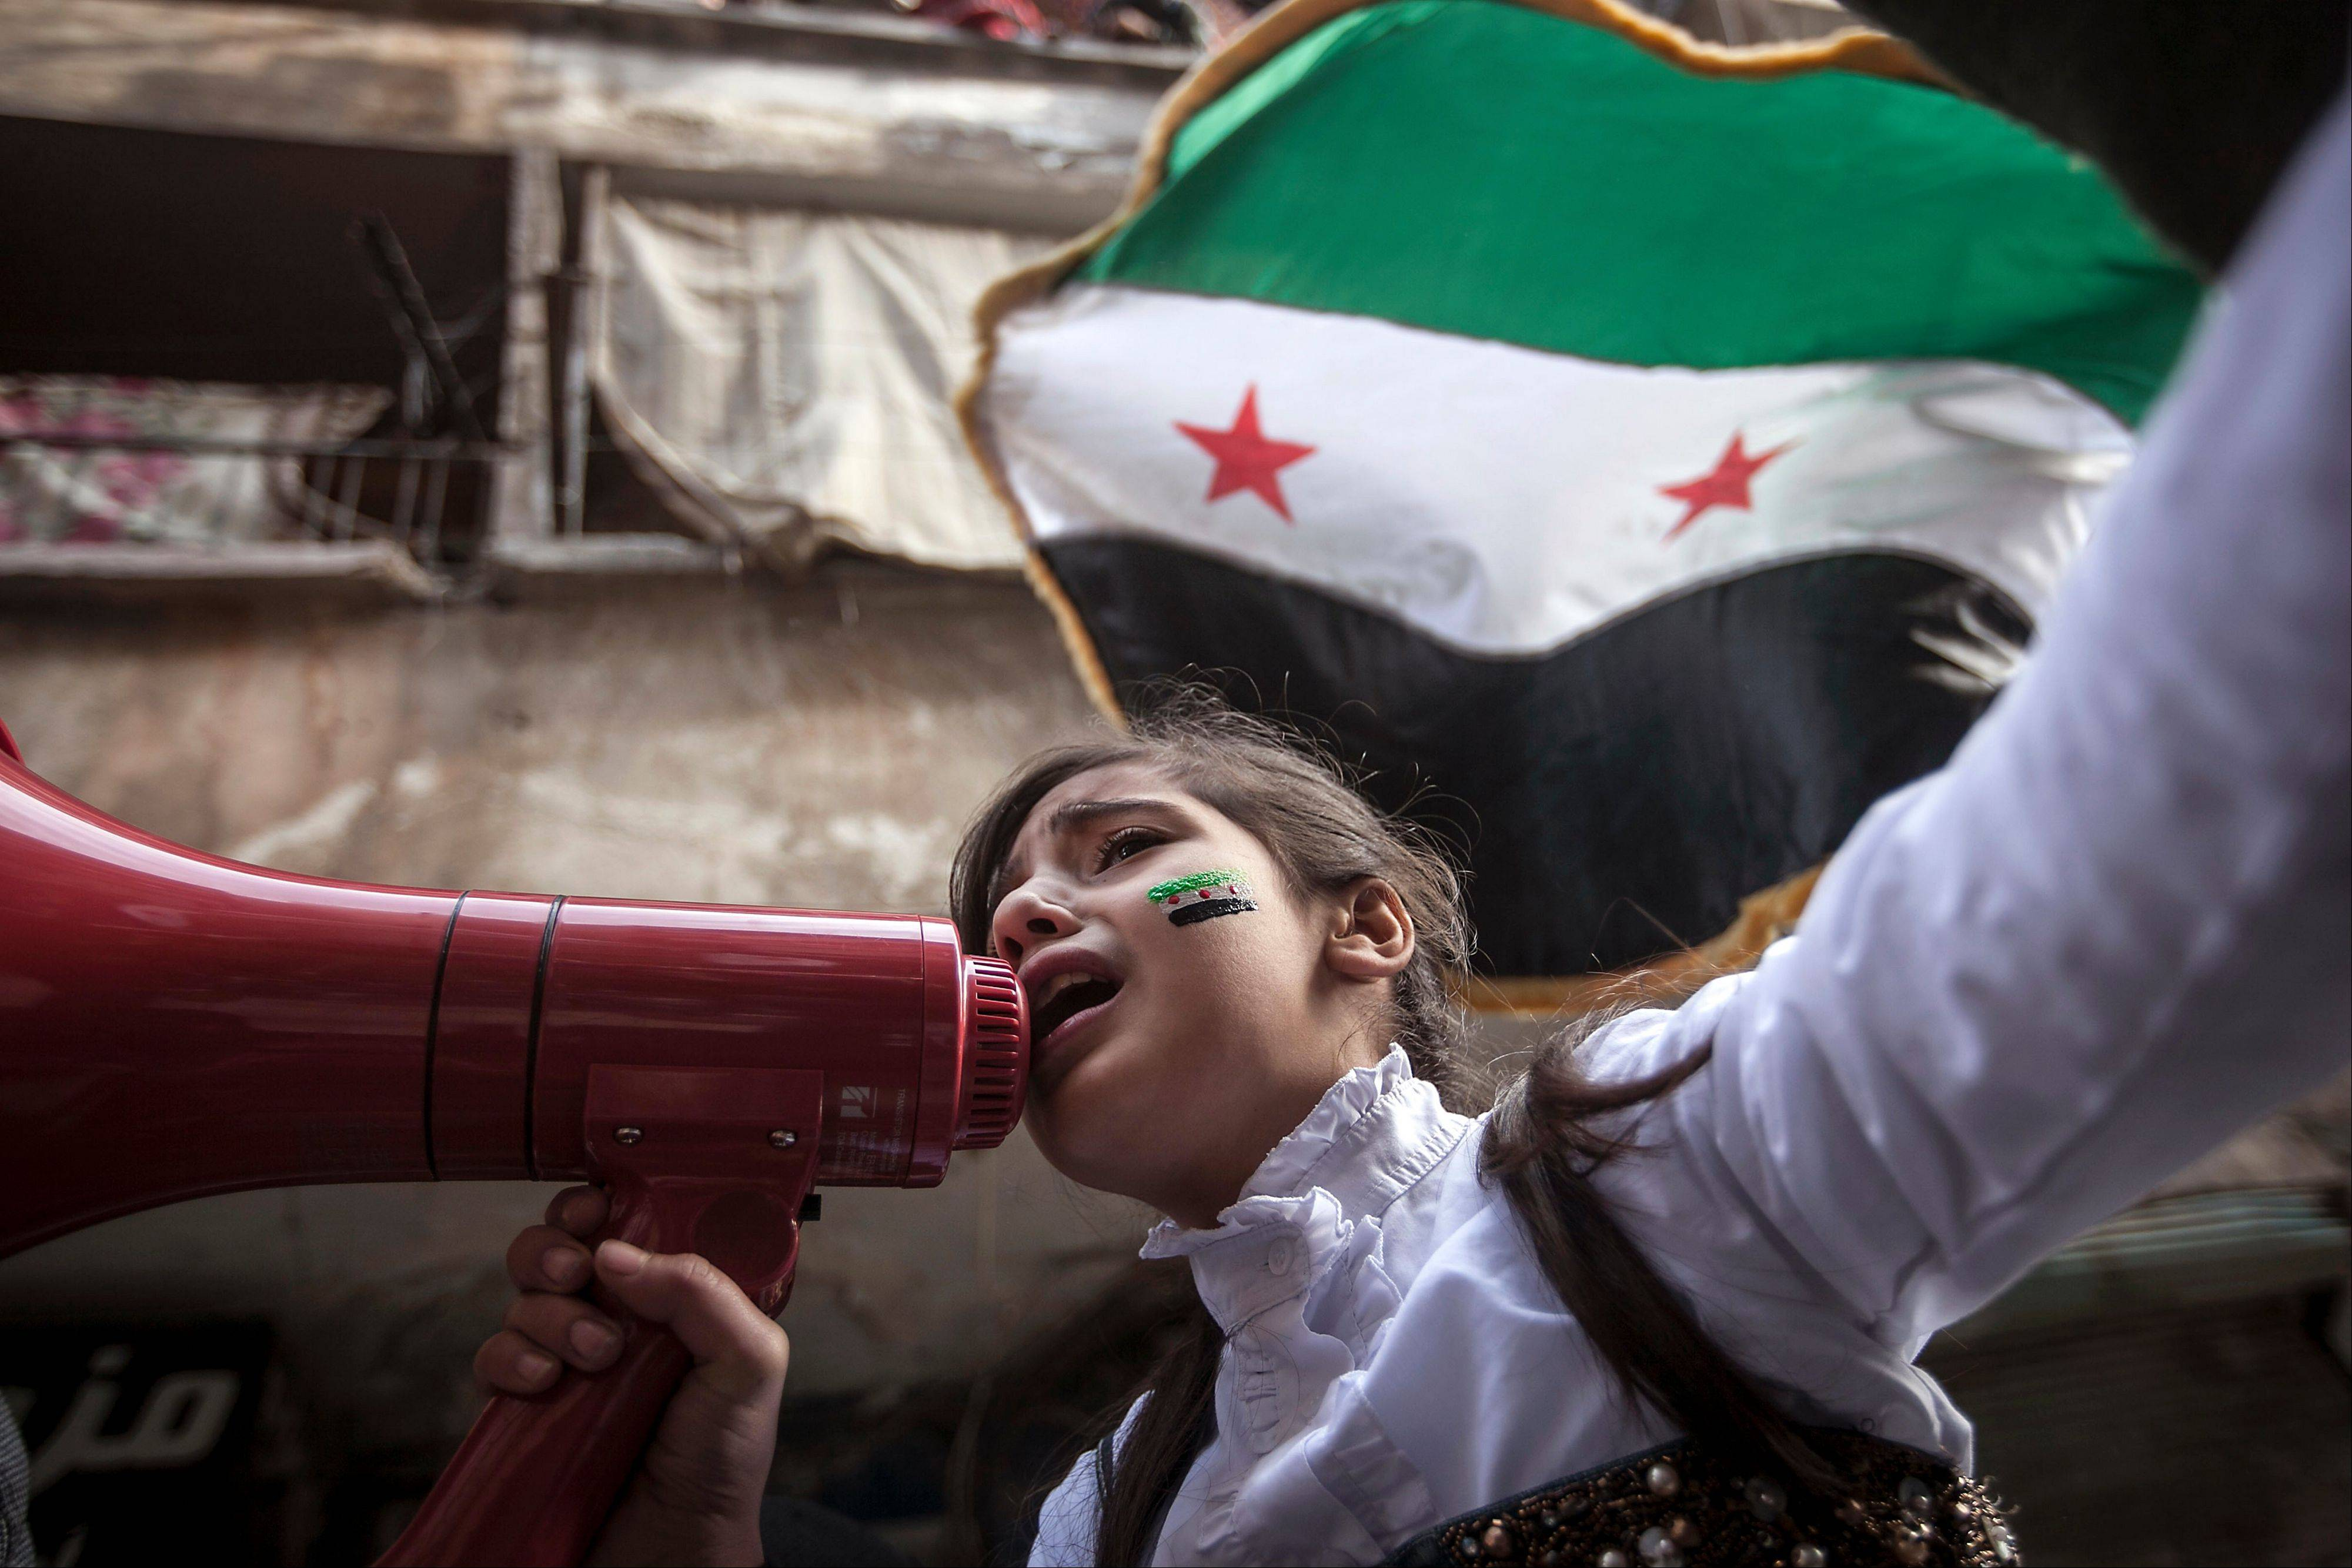 A Syrian girl chants slogans Friday during a demonstration in the Bustan Al-Qasr district of Aleppo, Syria. After months of fighting, thousands of residents have returned to the city as they attempt to return to their daily lives.